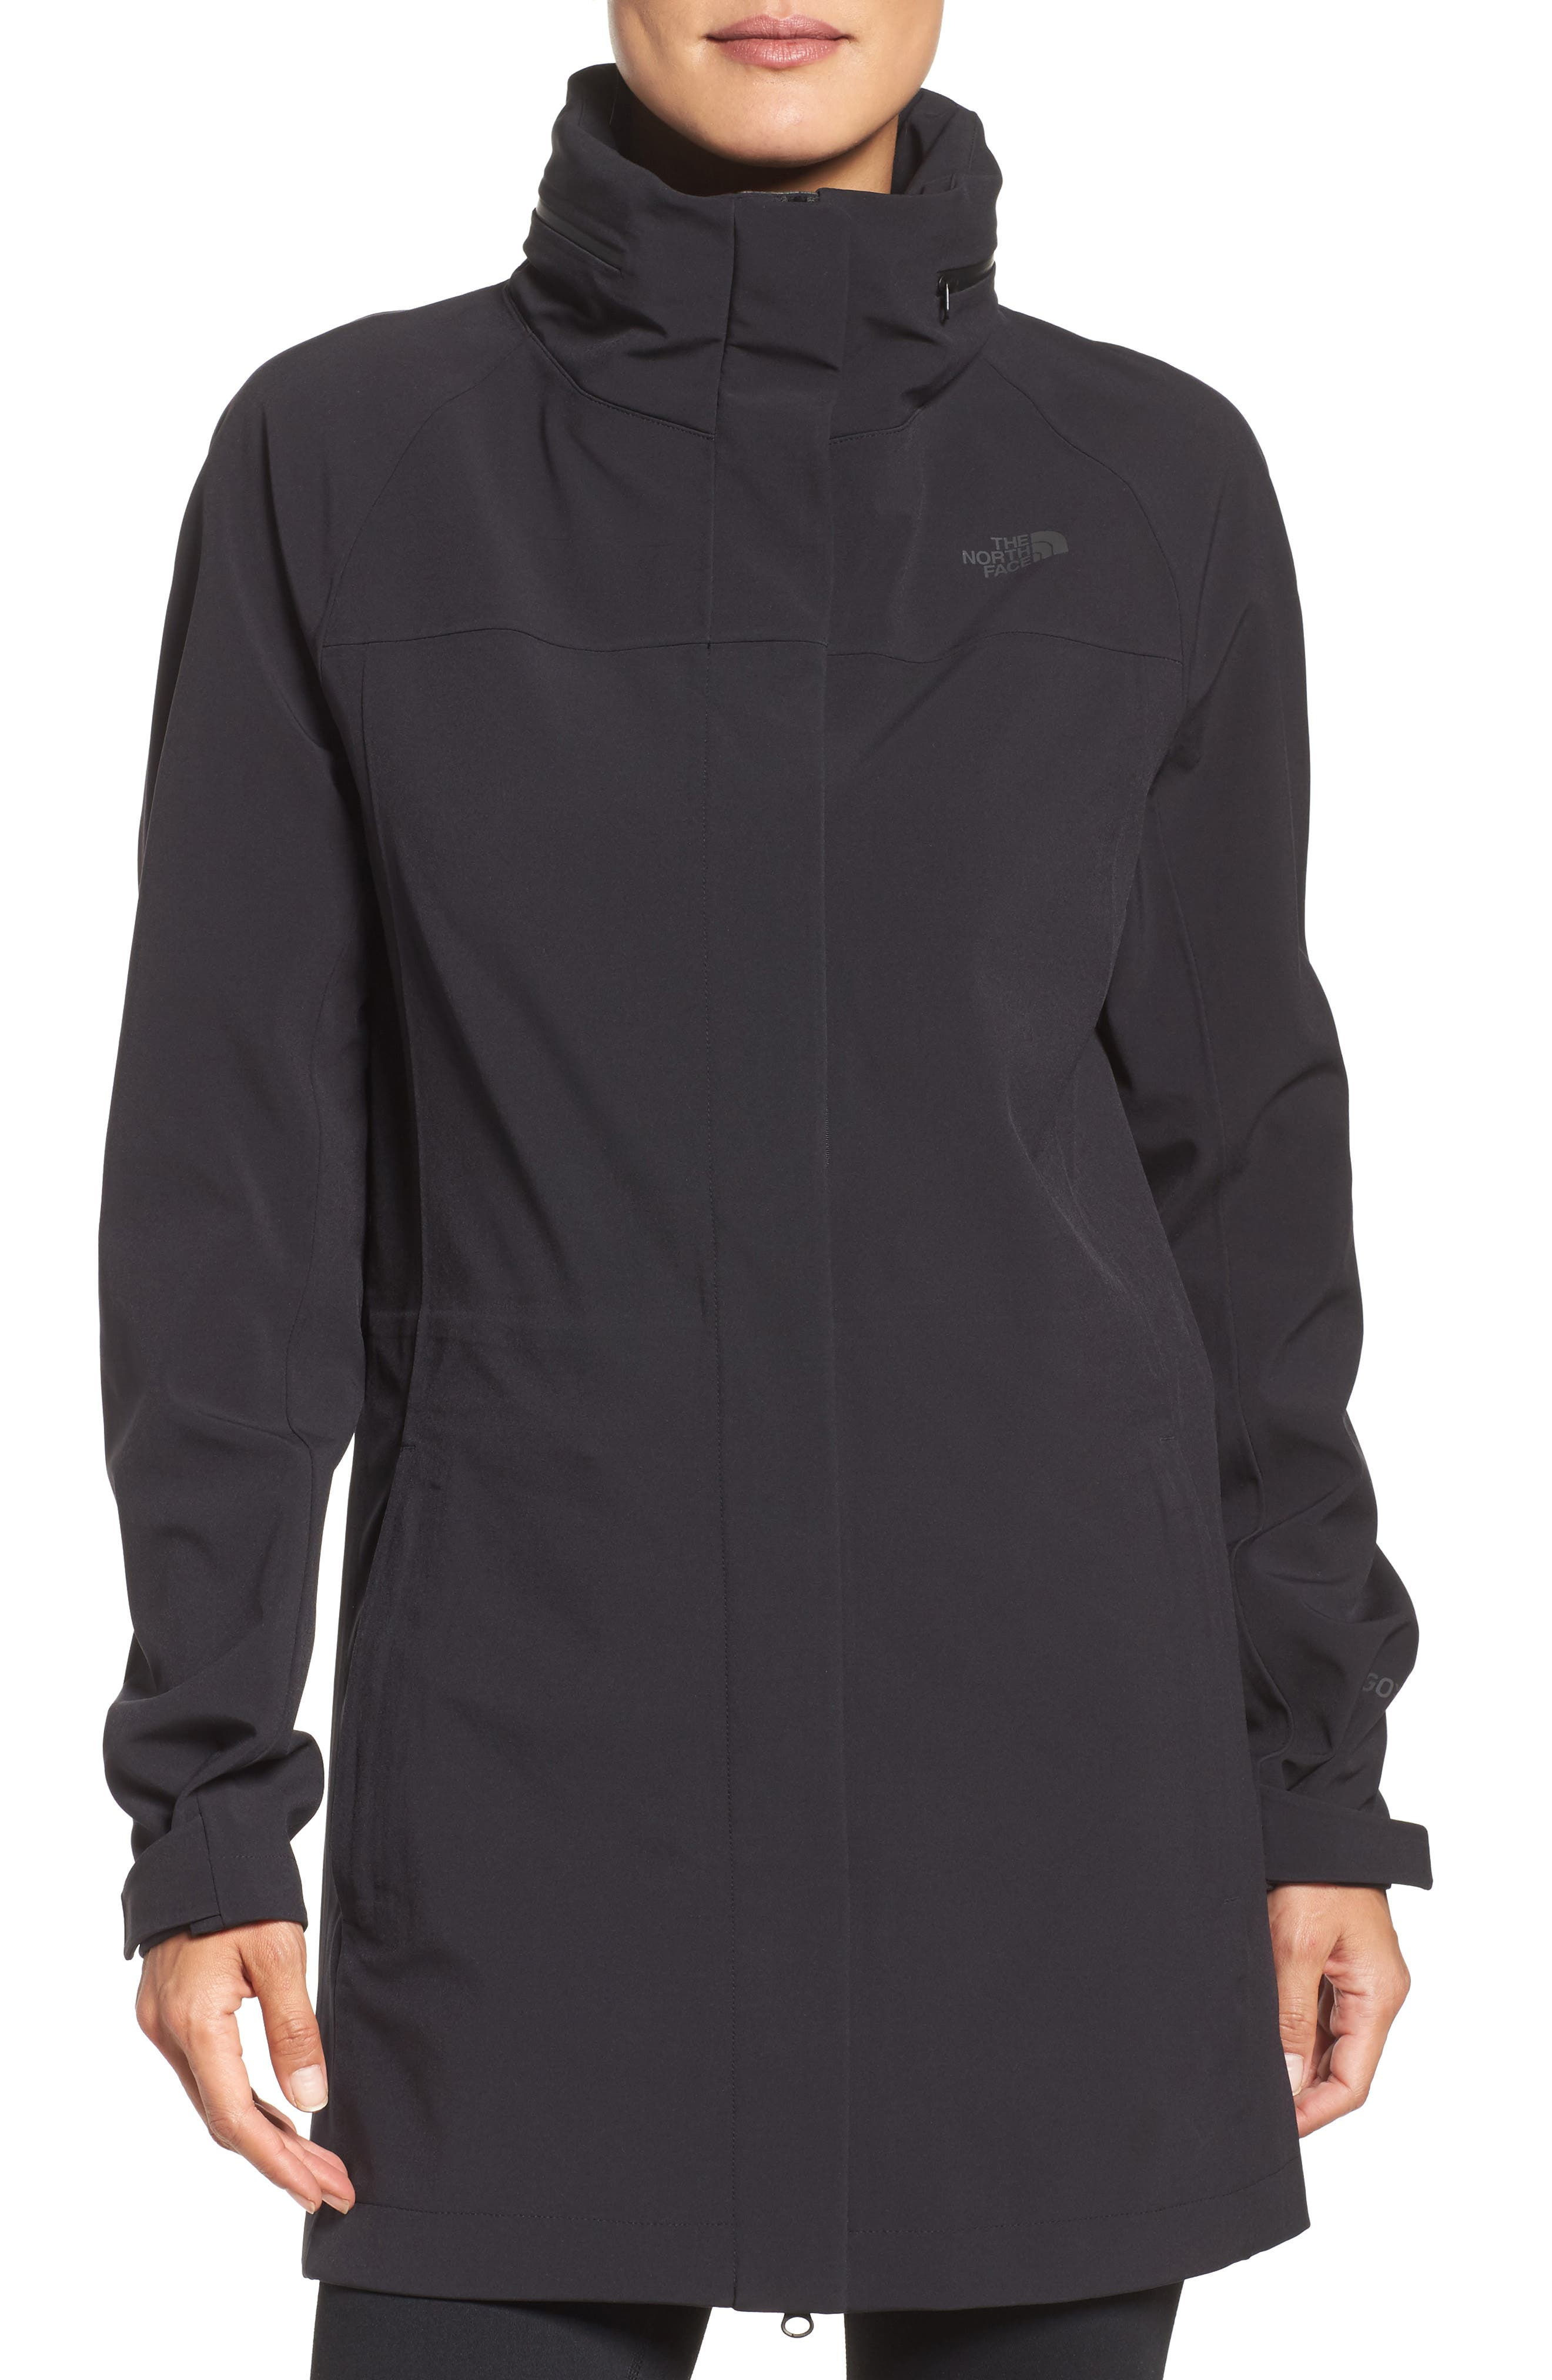 THE NORTH FACE Apex Flex Gore-Tex<sup>®</sup> Disruptor Jacket